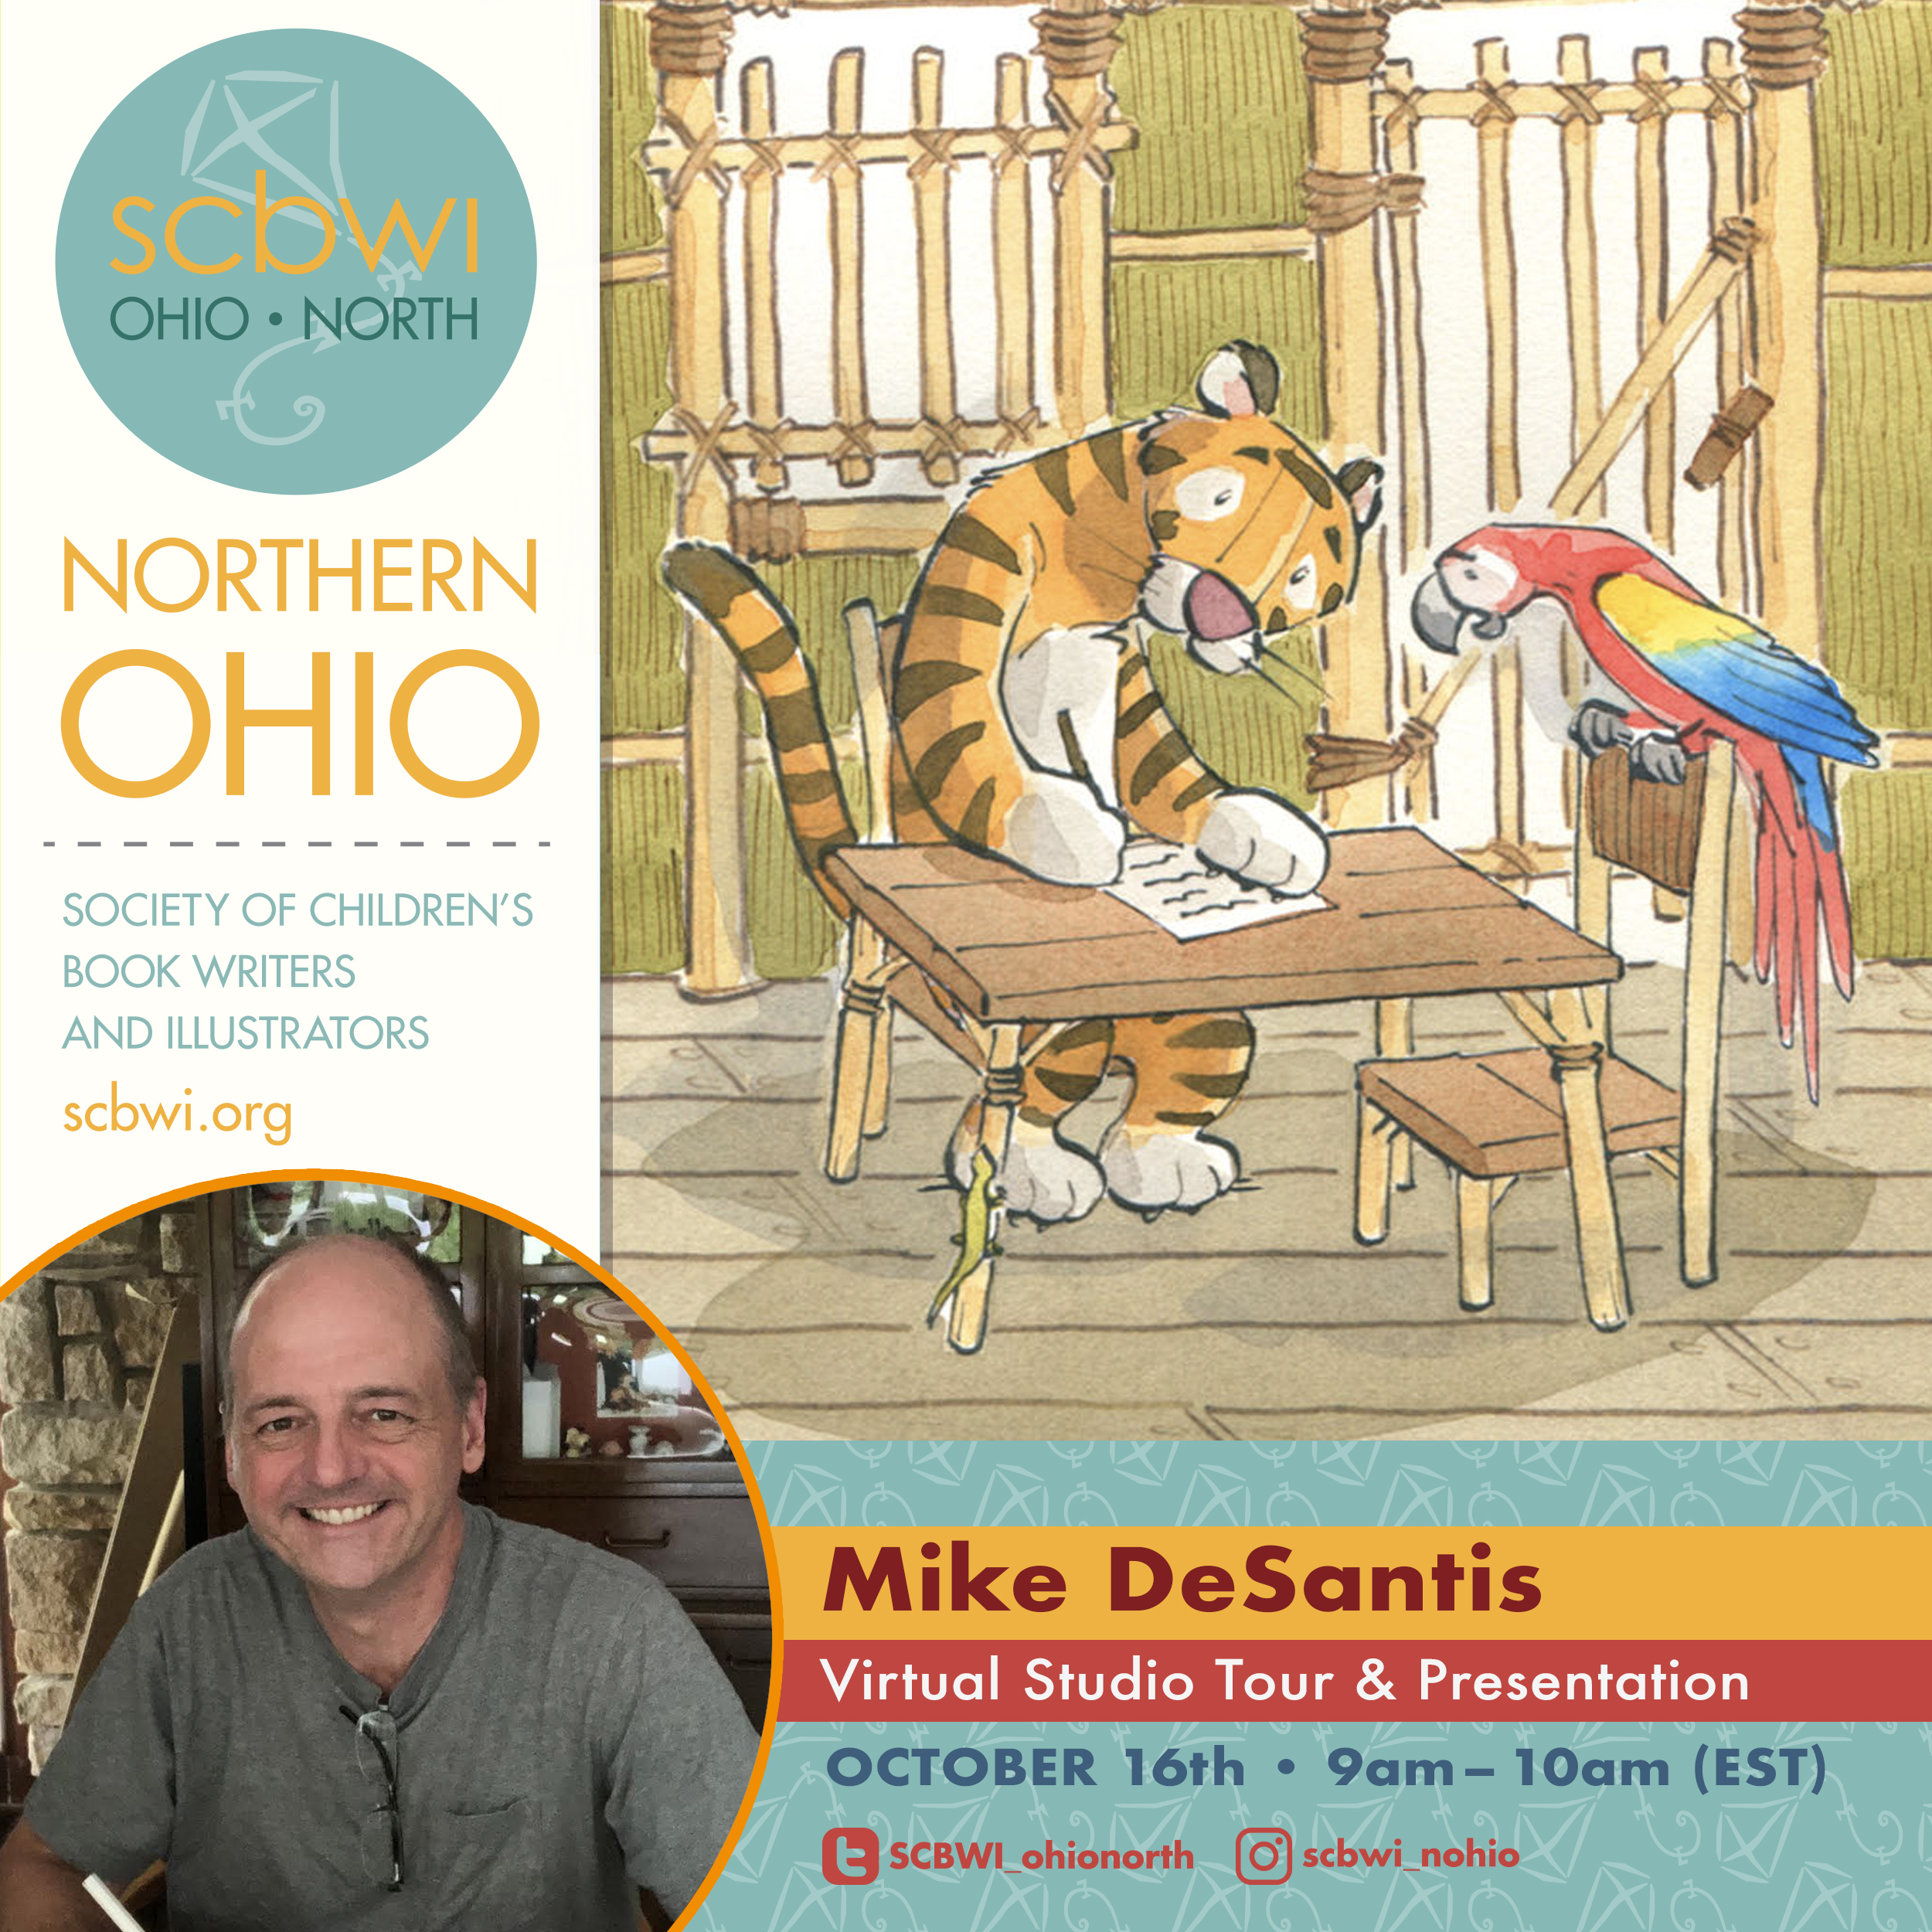 For more information or to register for Mike's virtual studio tour -> https://bit.ly/3giBJm2